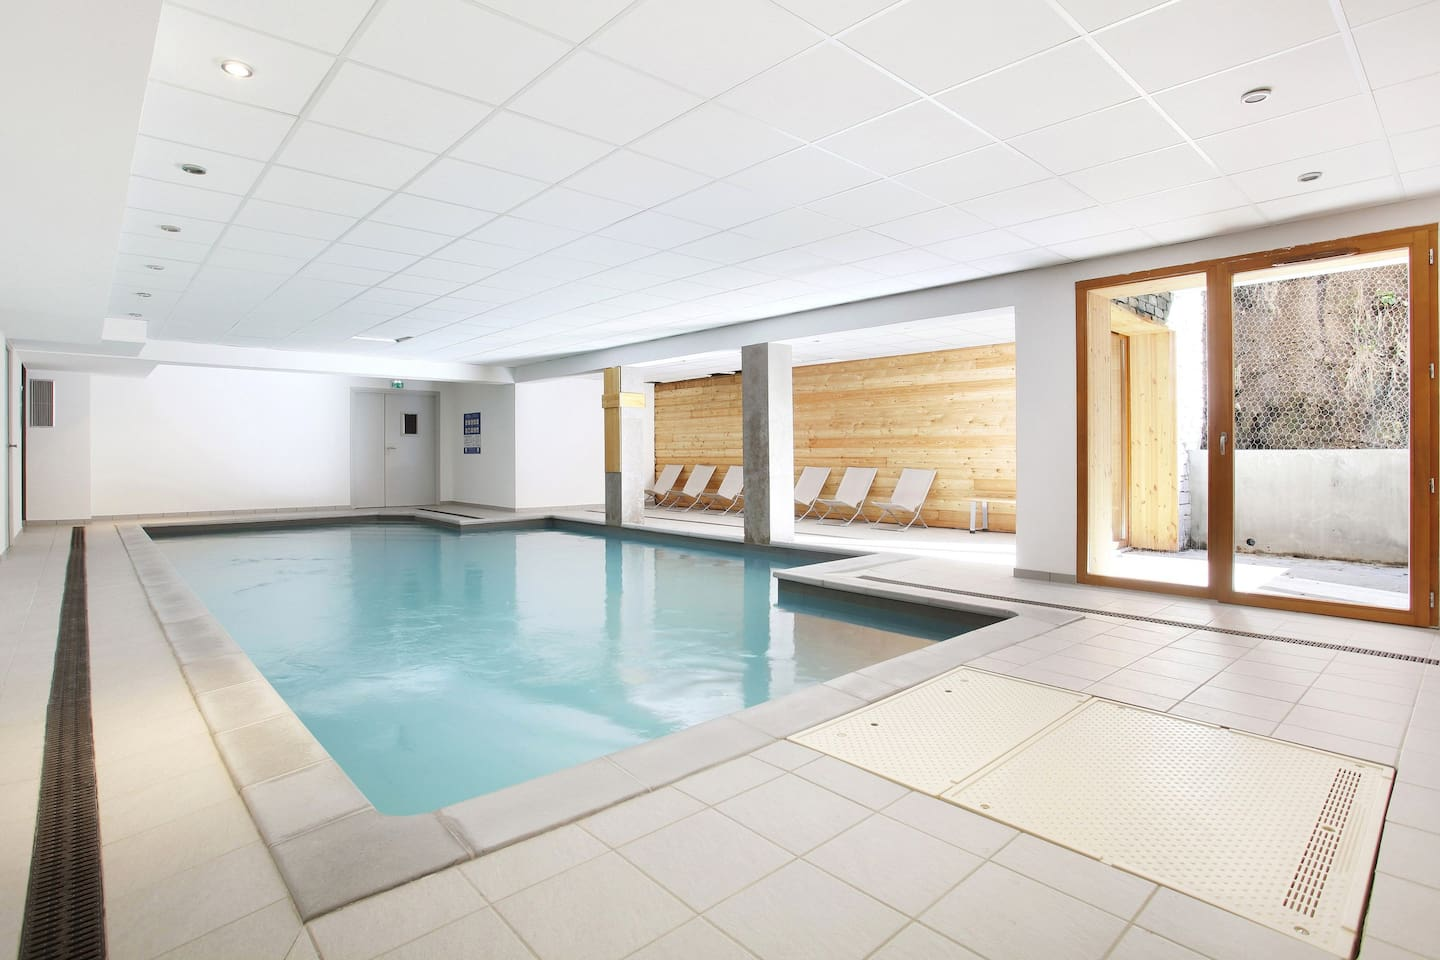 Enjoy access to the indoor heated swimming pool.